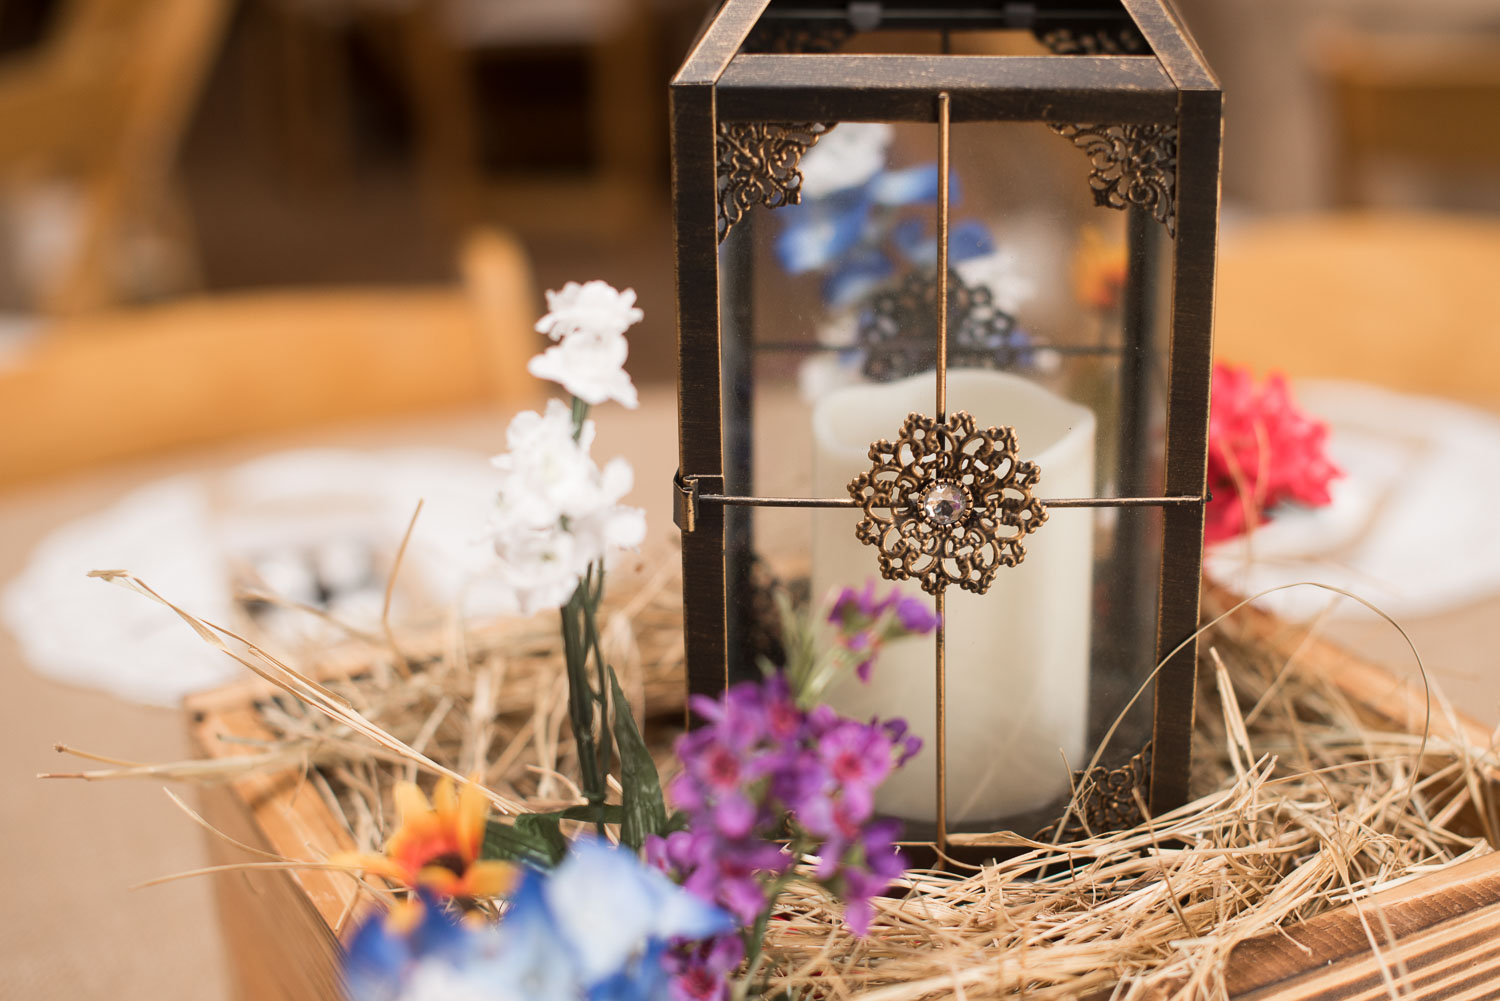 60 Reception Centerpieces lantern hay and wood boxes on burlap with wildflowers.jpg